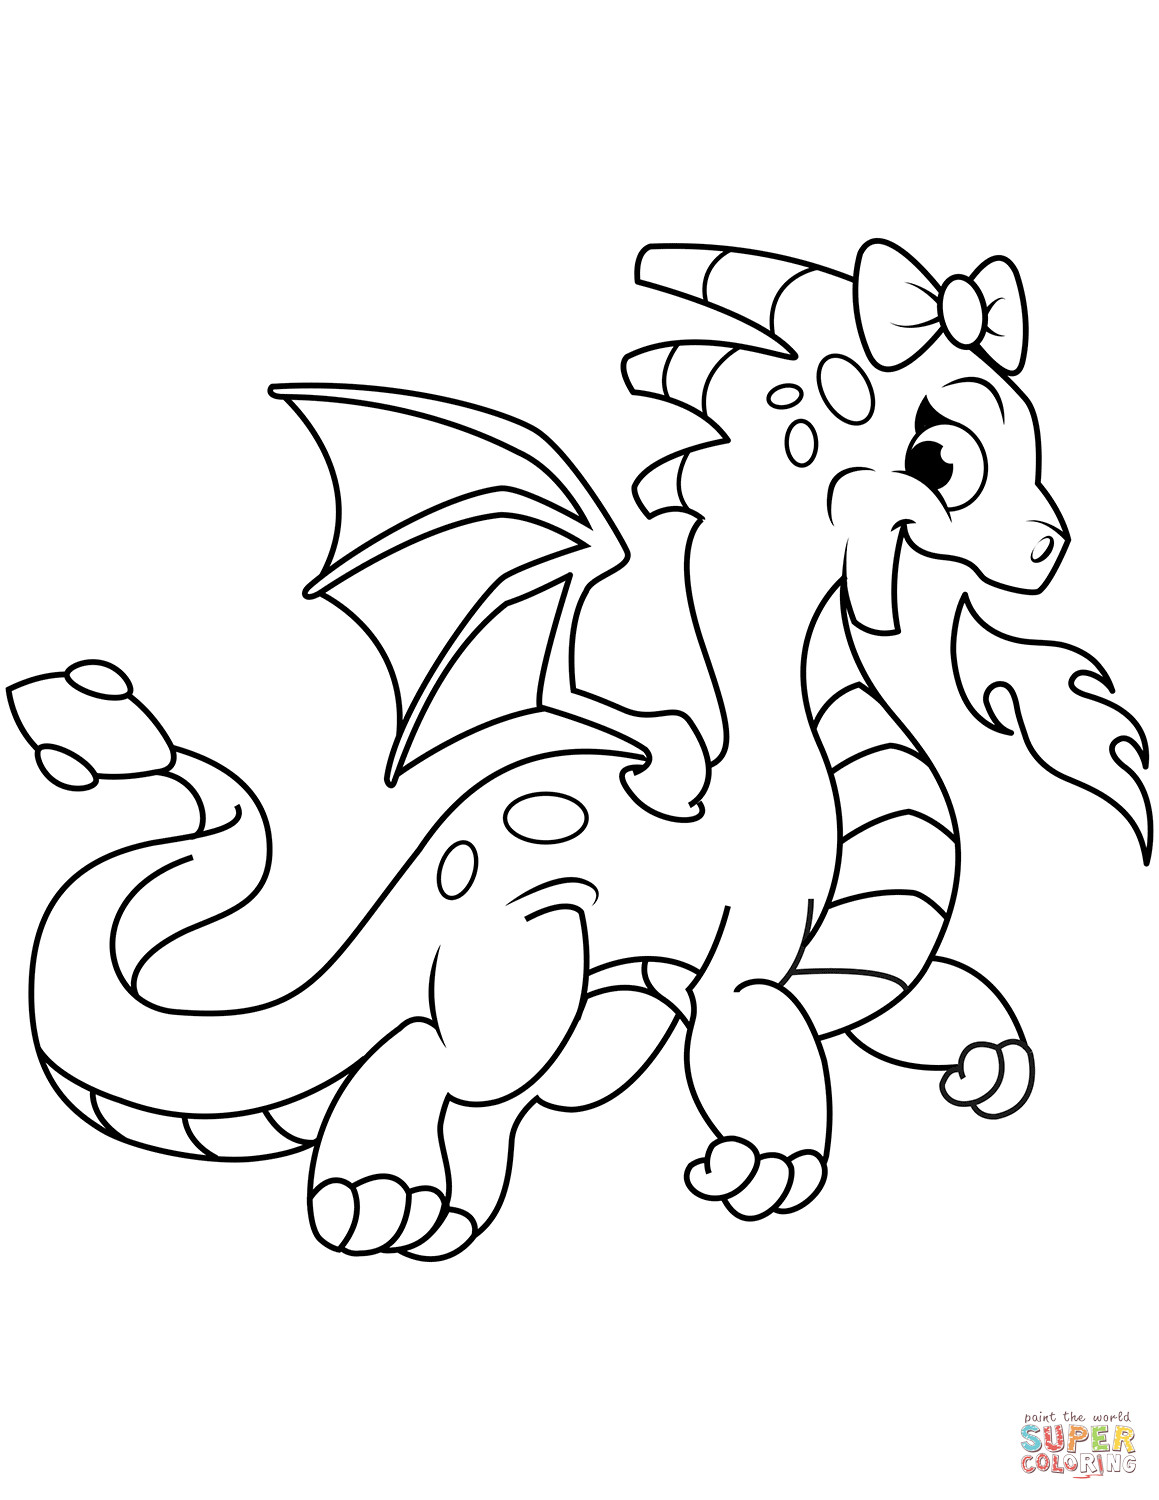 Coloring Pages To Trace At Getdrawings